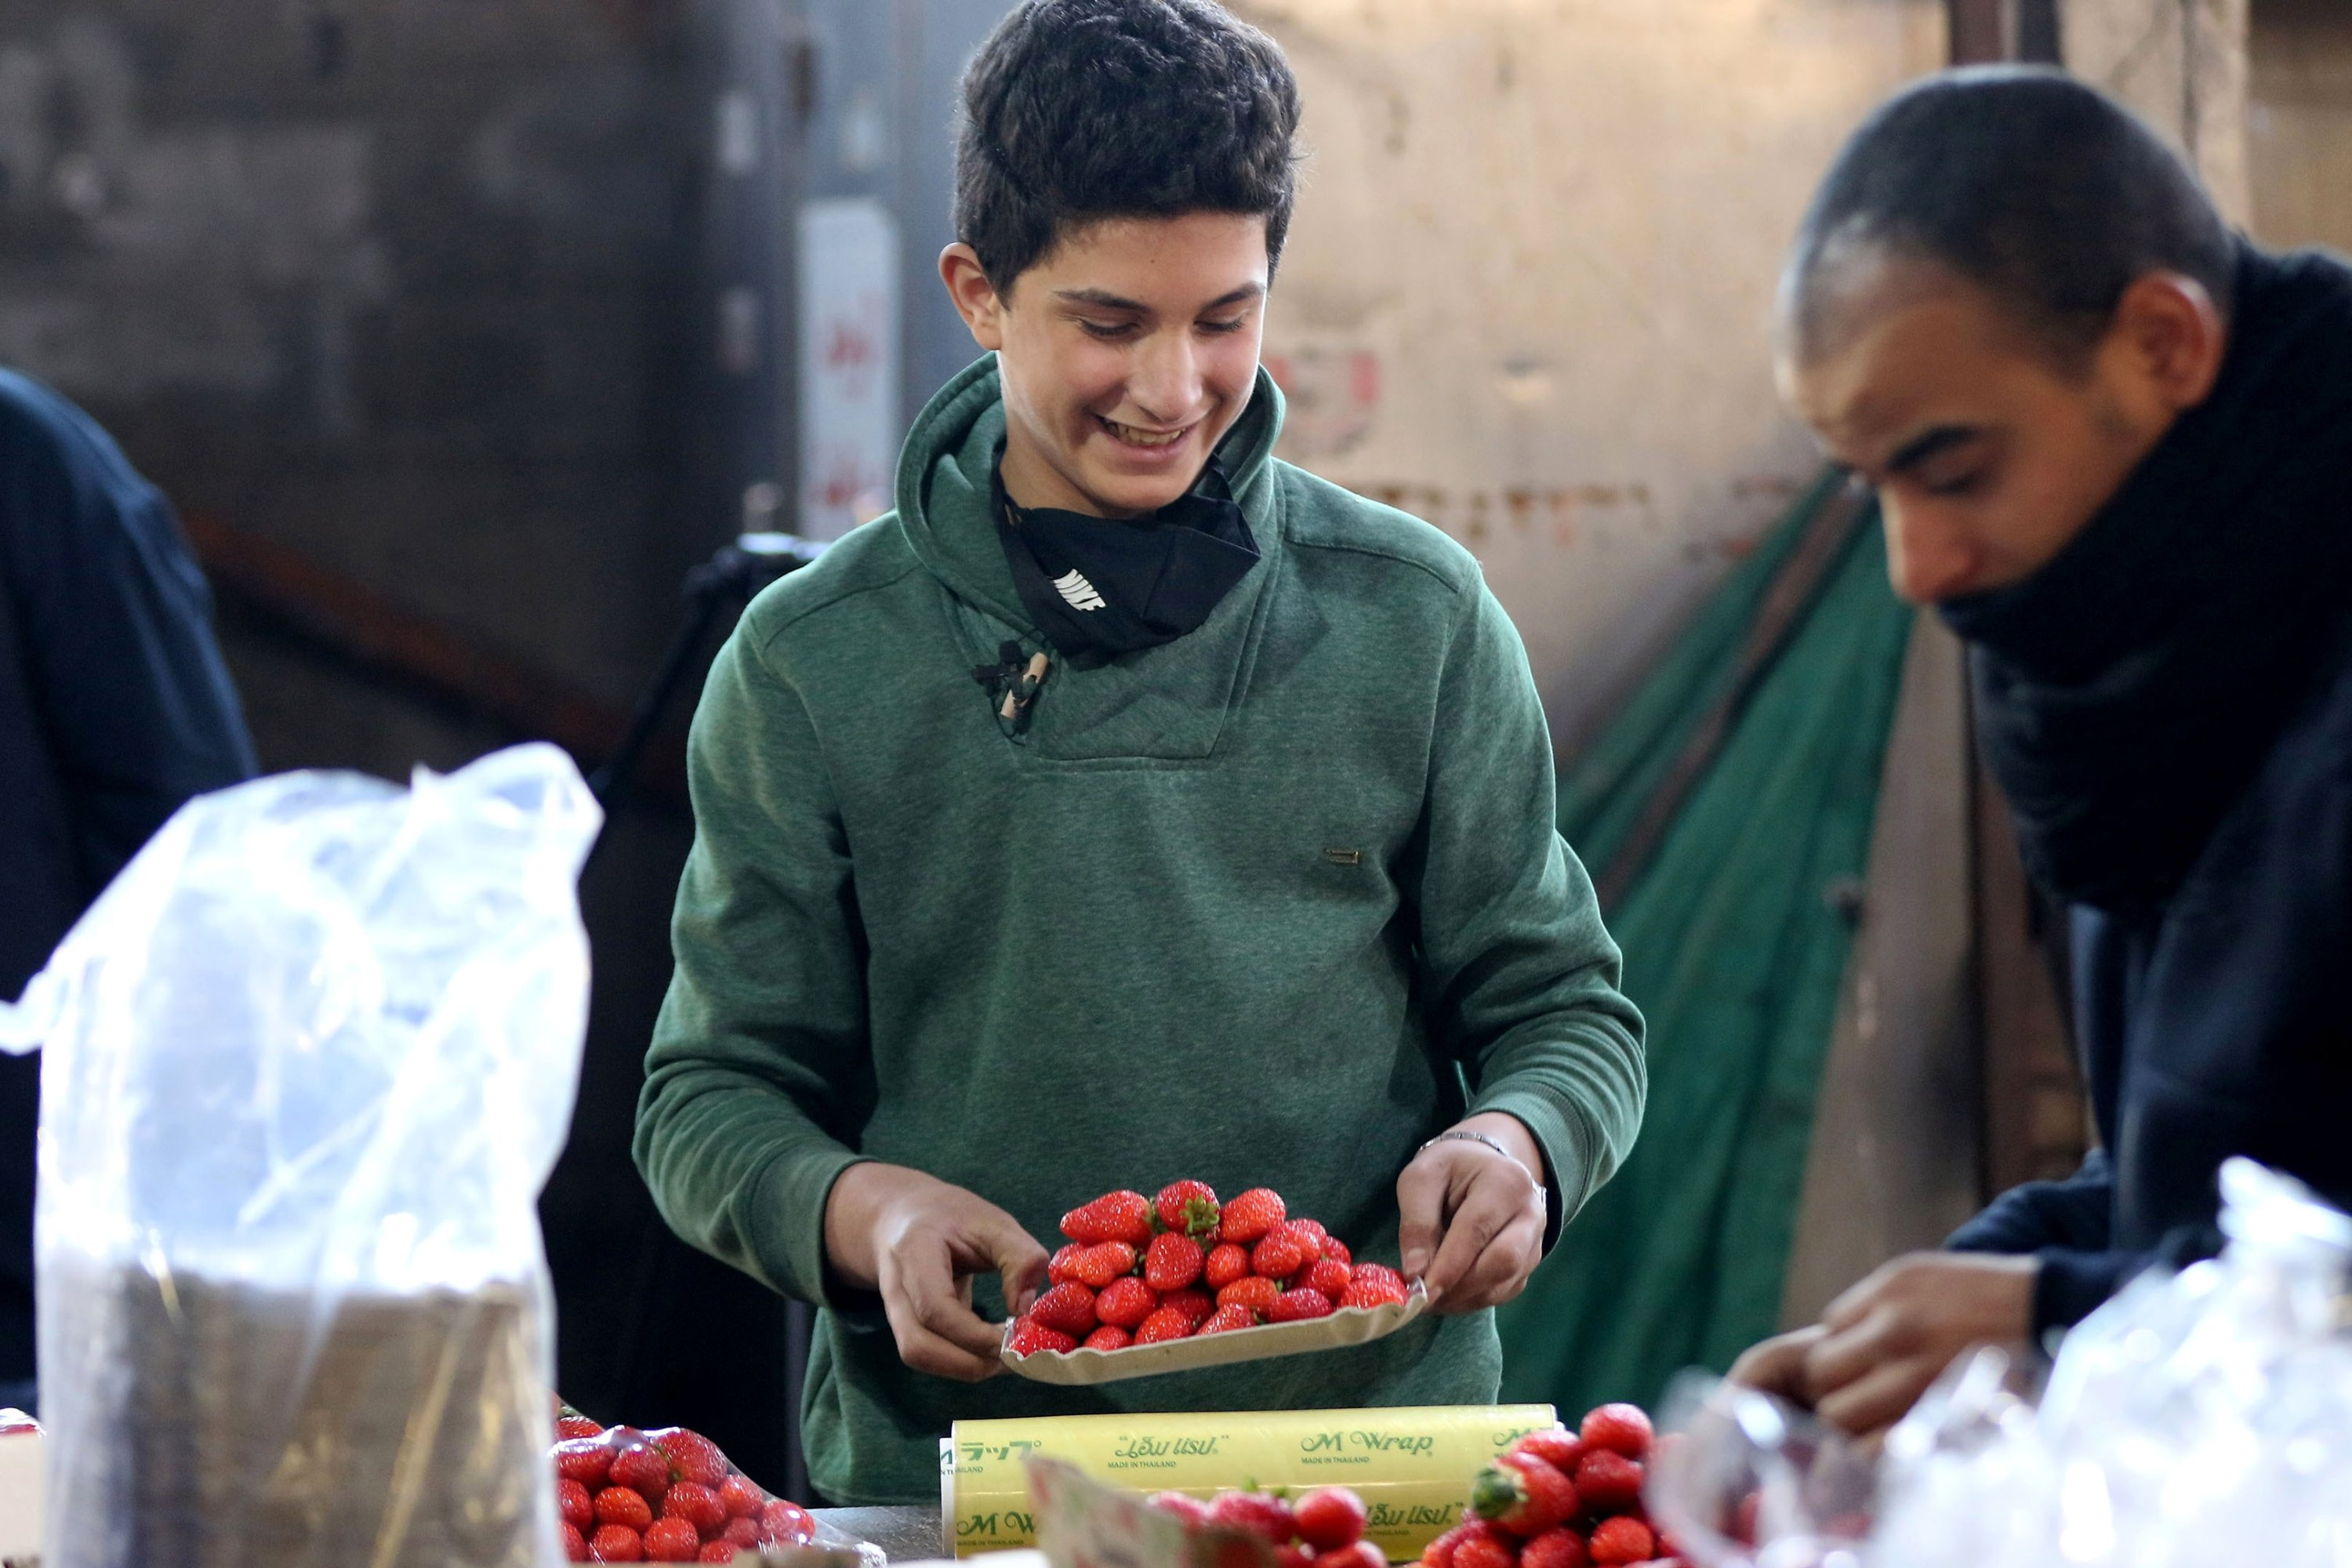 Mohammad, 14, arranges strawberry boxes in one of Amman's popular vegetable and fruit markets, Jordan, Jan. 10, 2021. (AFP Photo)